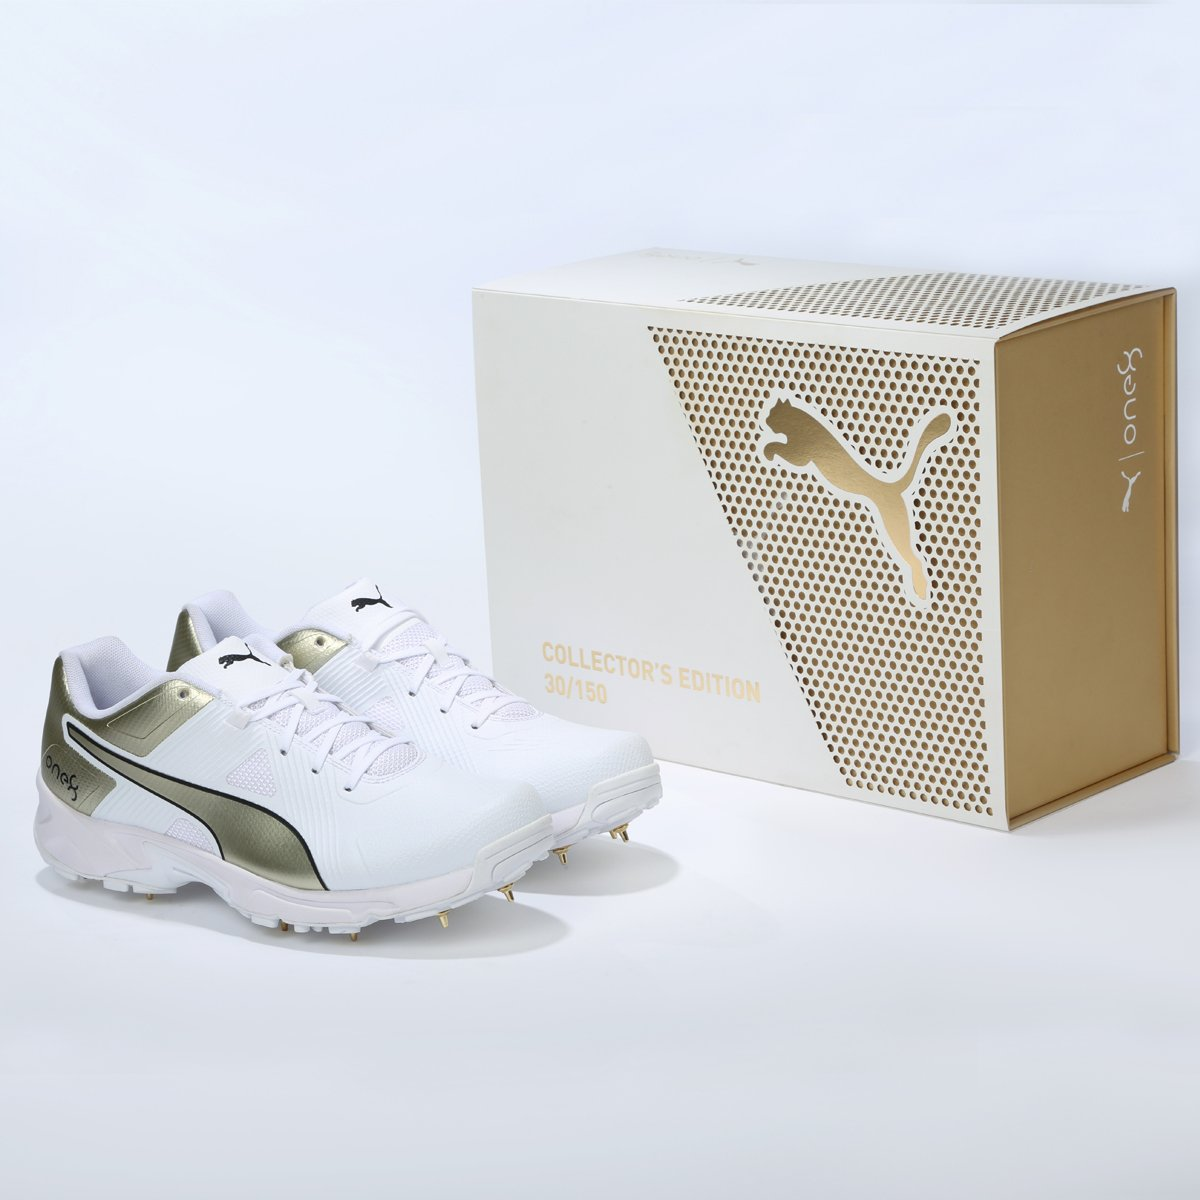 puma one8 gold spikes price Shop